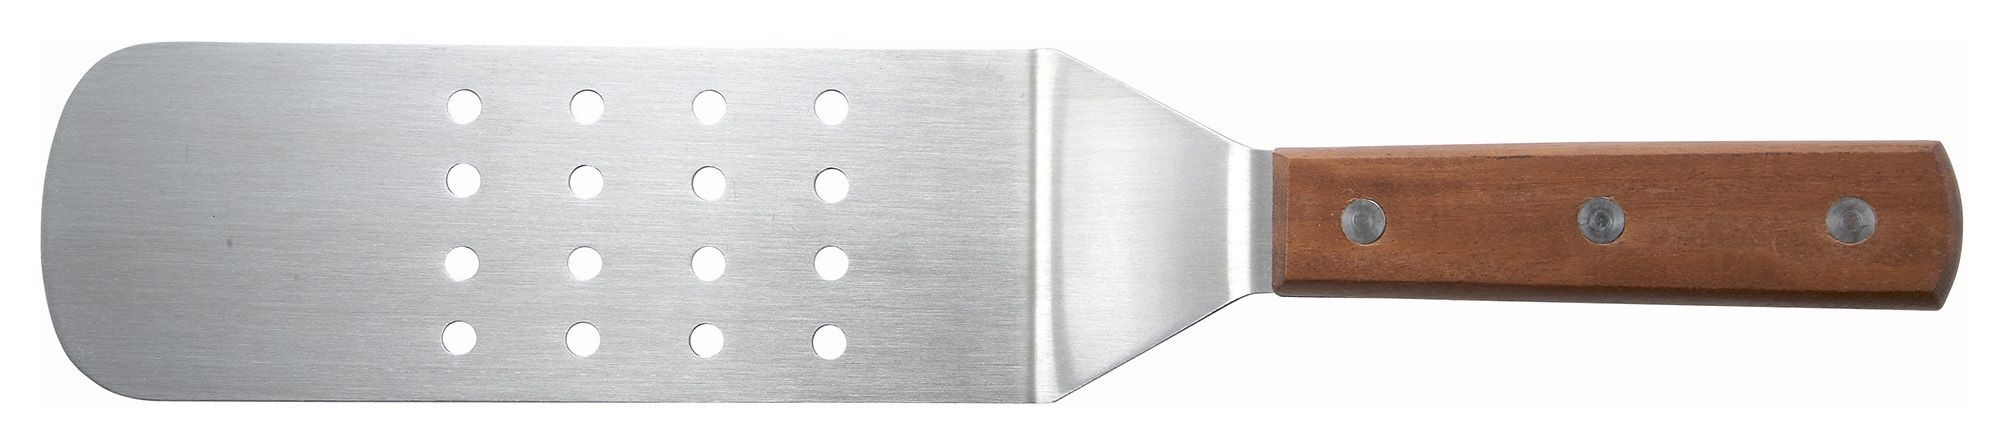 Flexible Turner With 9-1/2 X 3 Perforated Blade